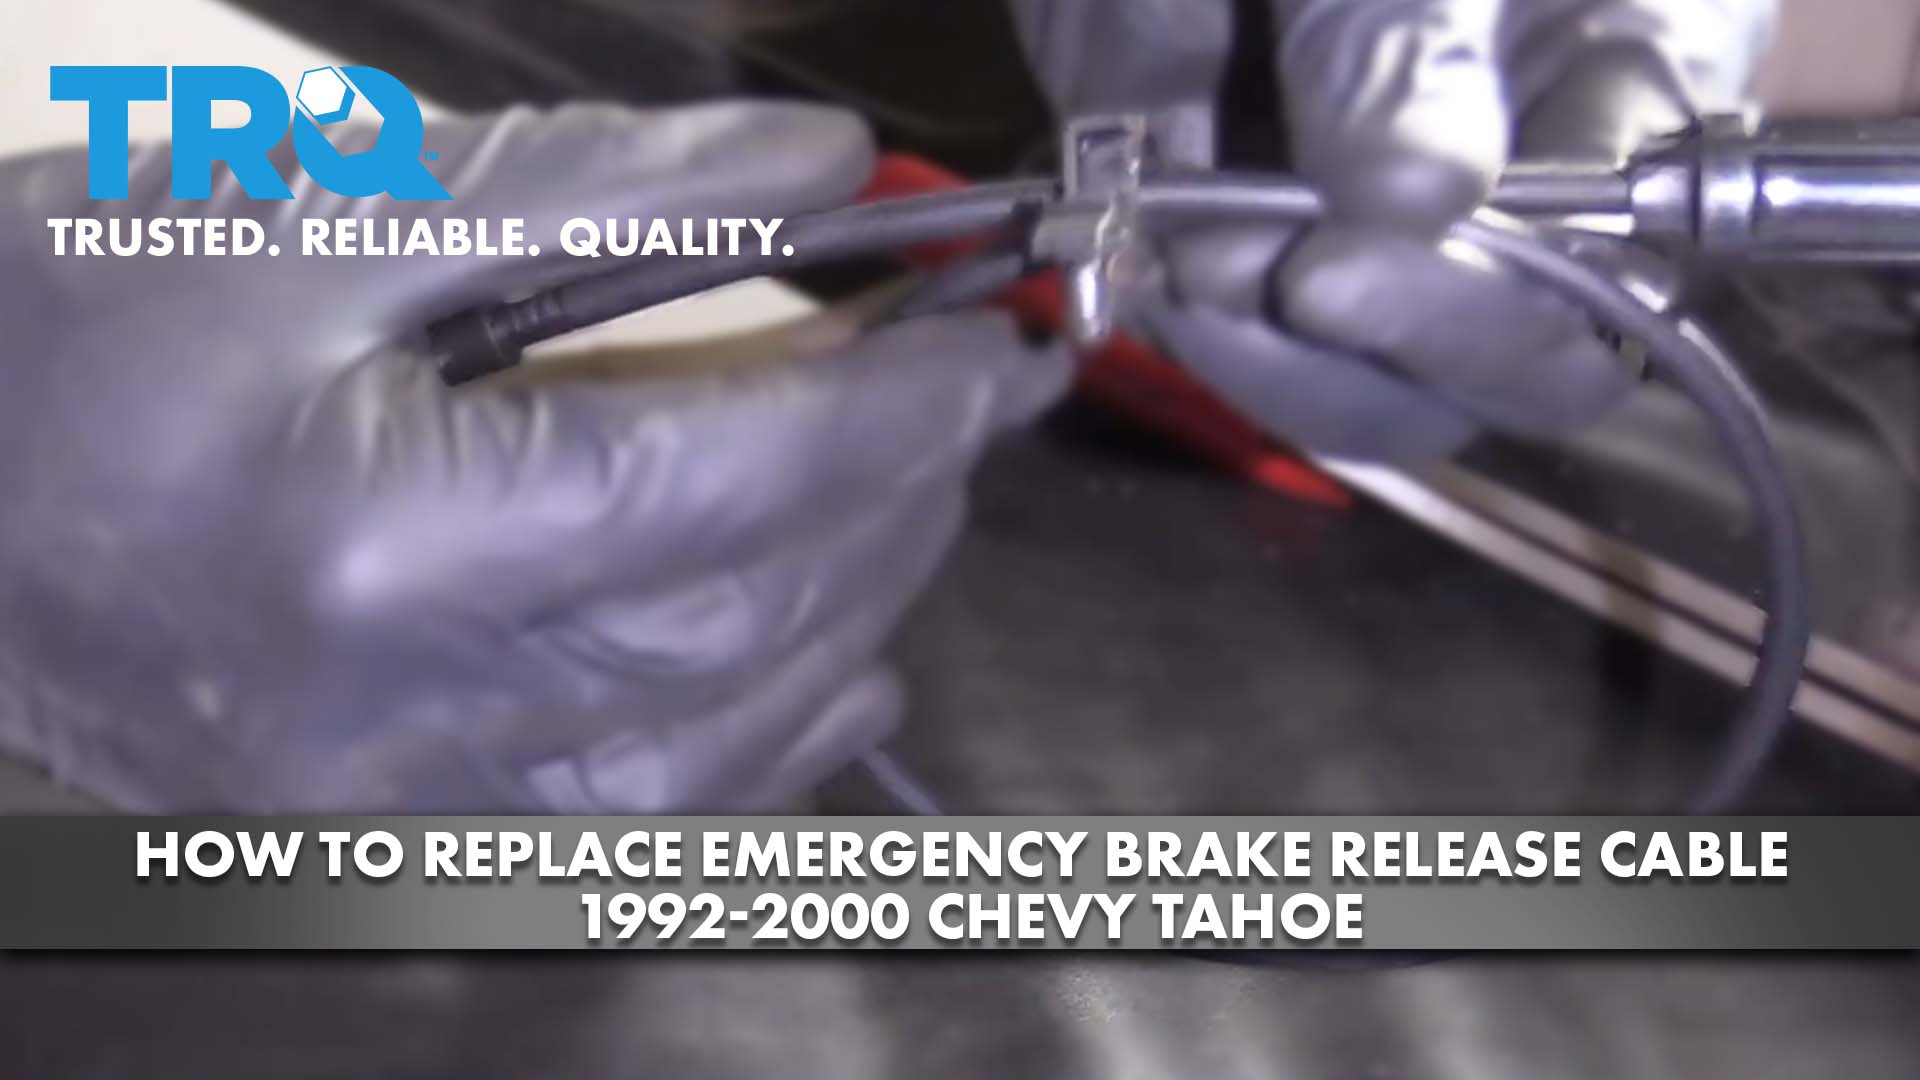 How To Replace Emergency Brake Release Cable 1992-2000 Chevy Tahoe